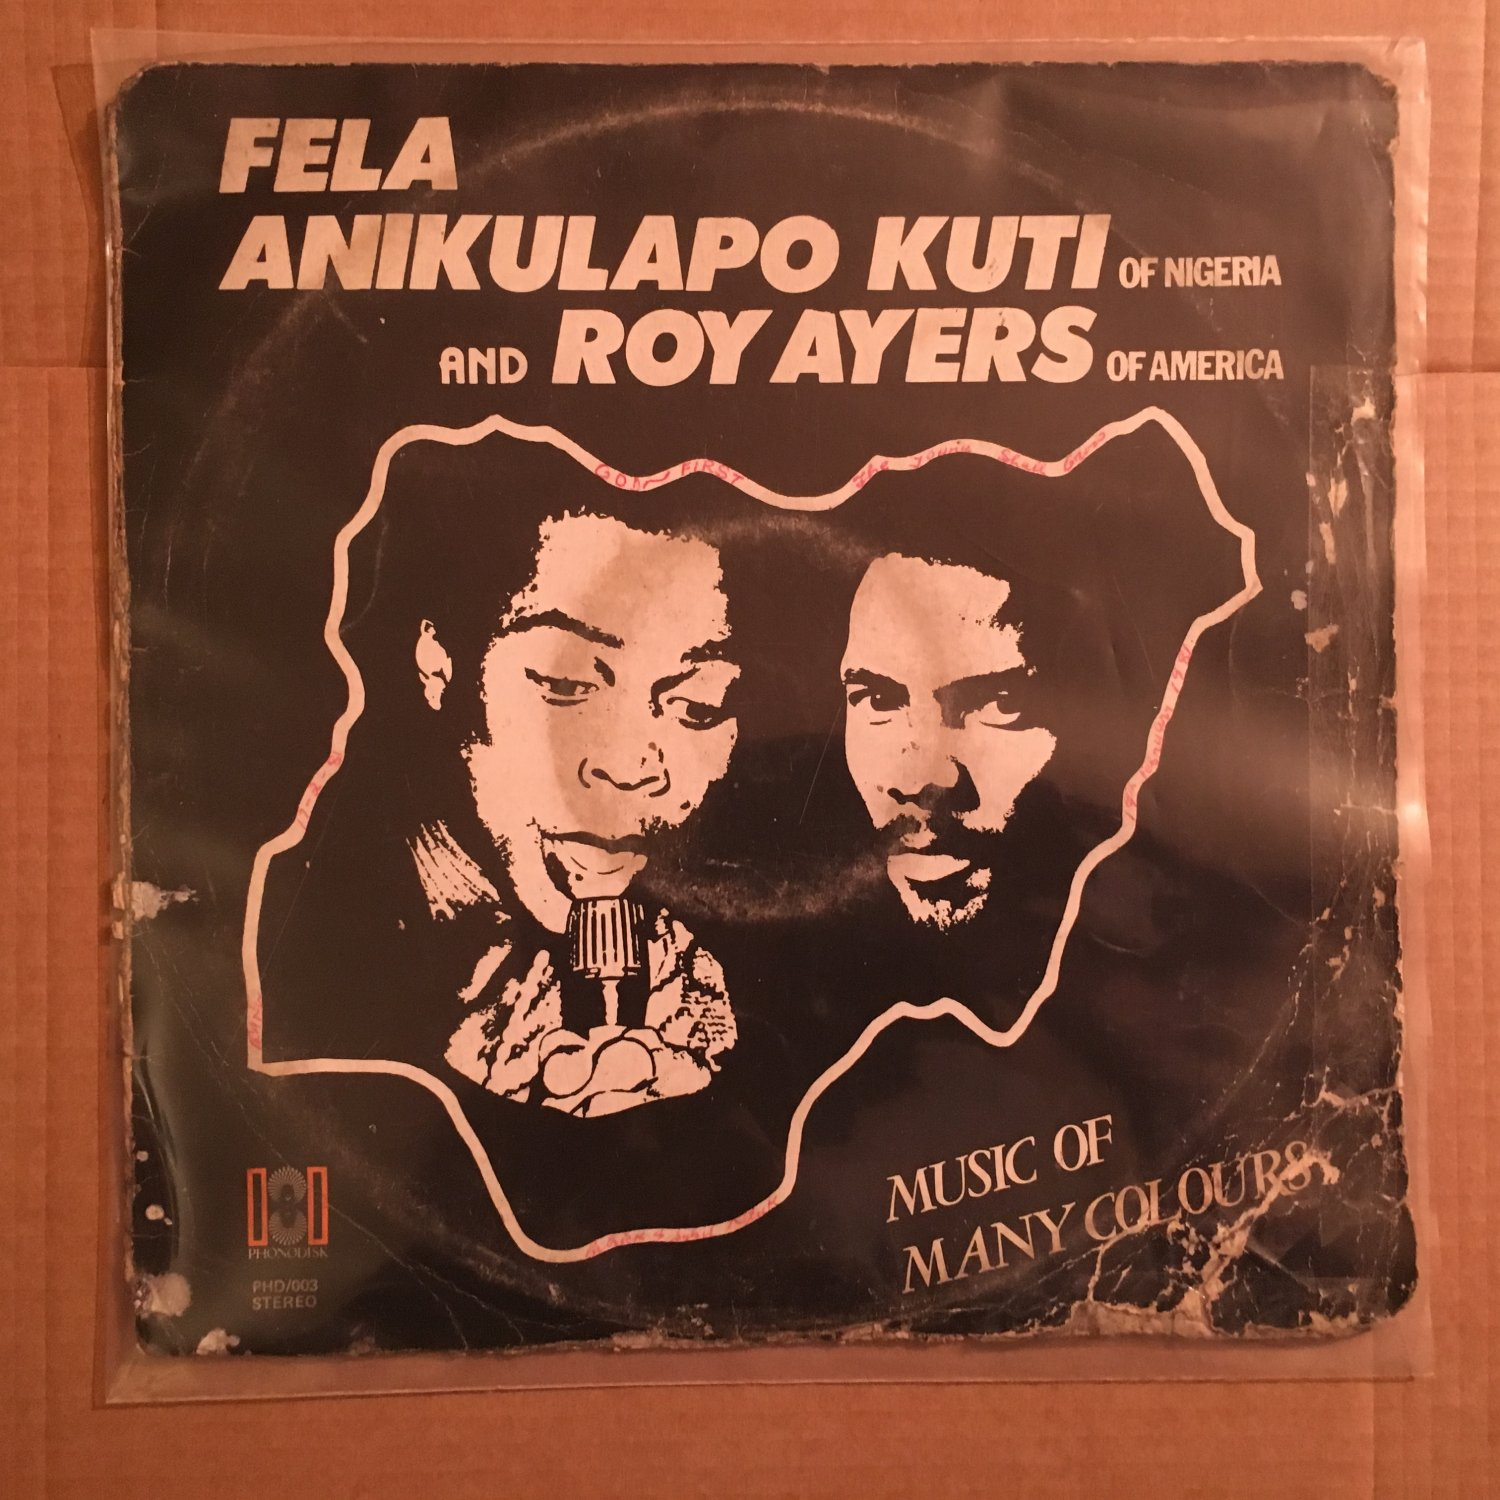 FELA & ROY AYERS LP music of many colors NIGERIA AFRO BEAT AFRO FUNK PHONODISK ORG mp3 LISTEN